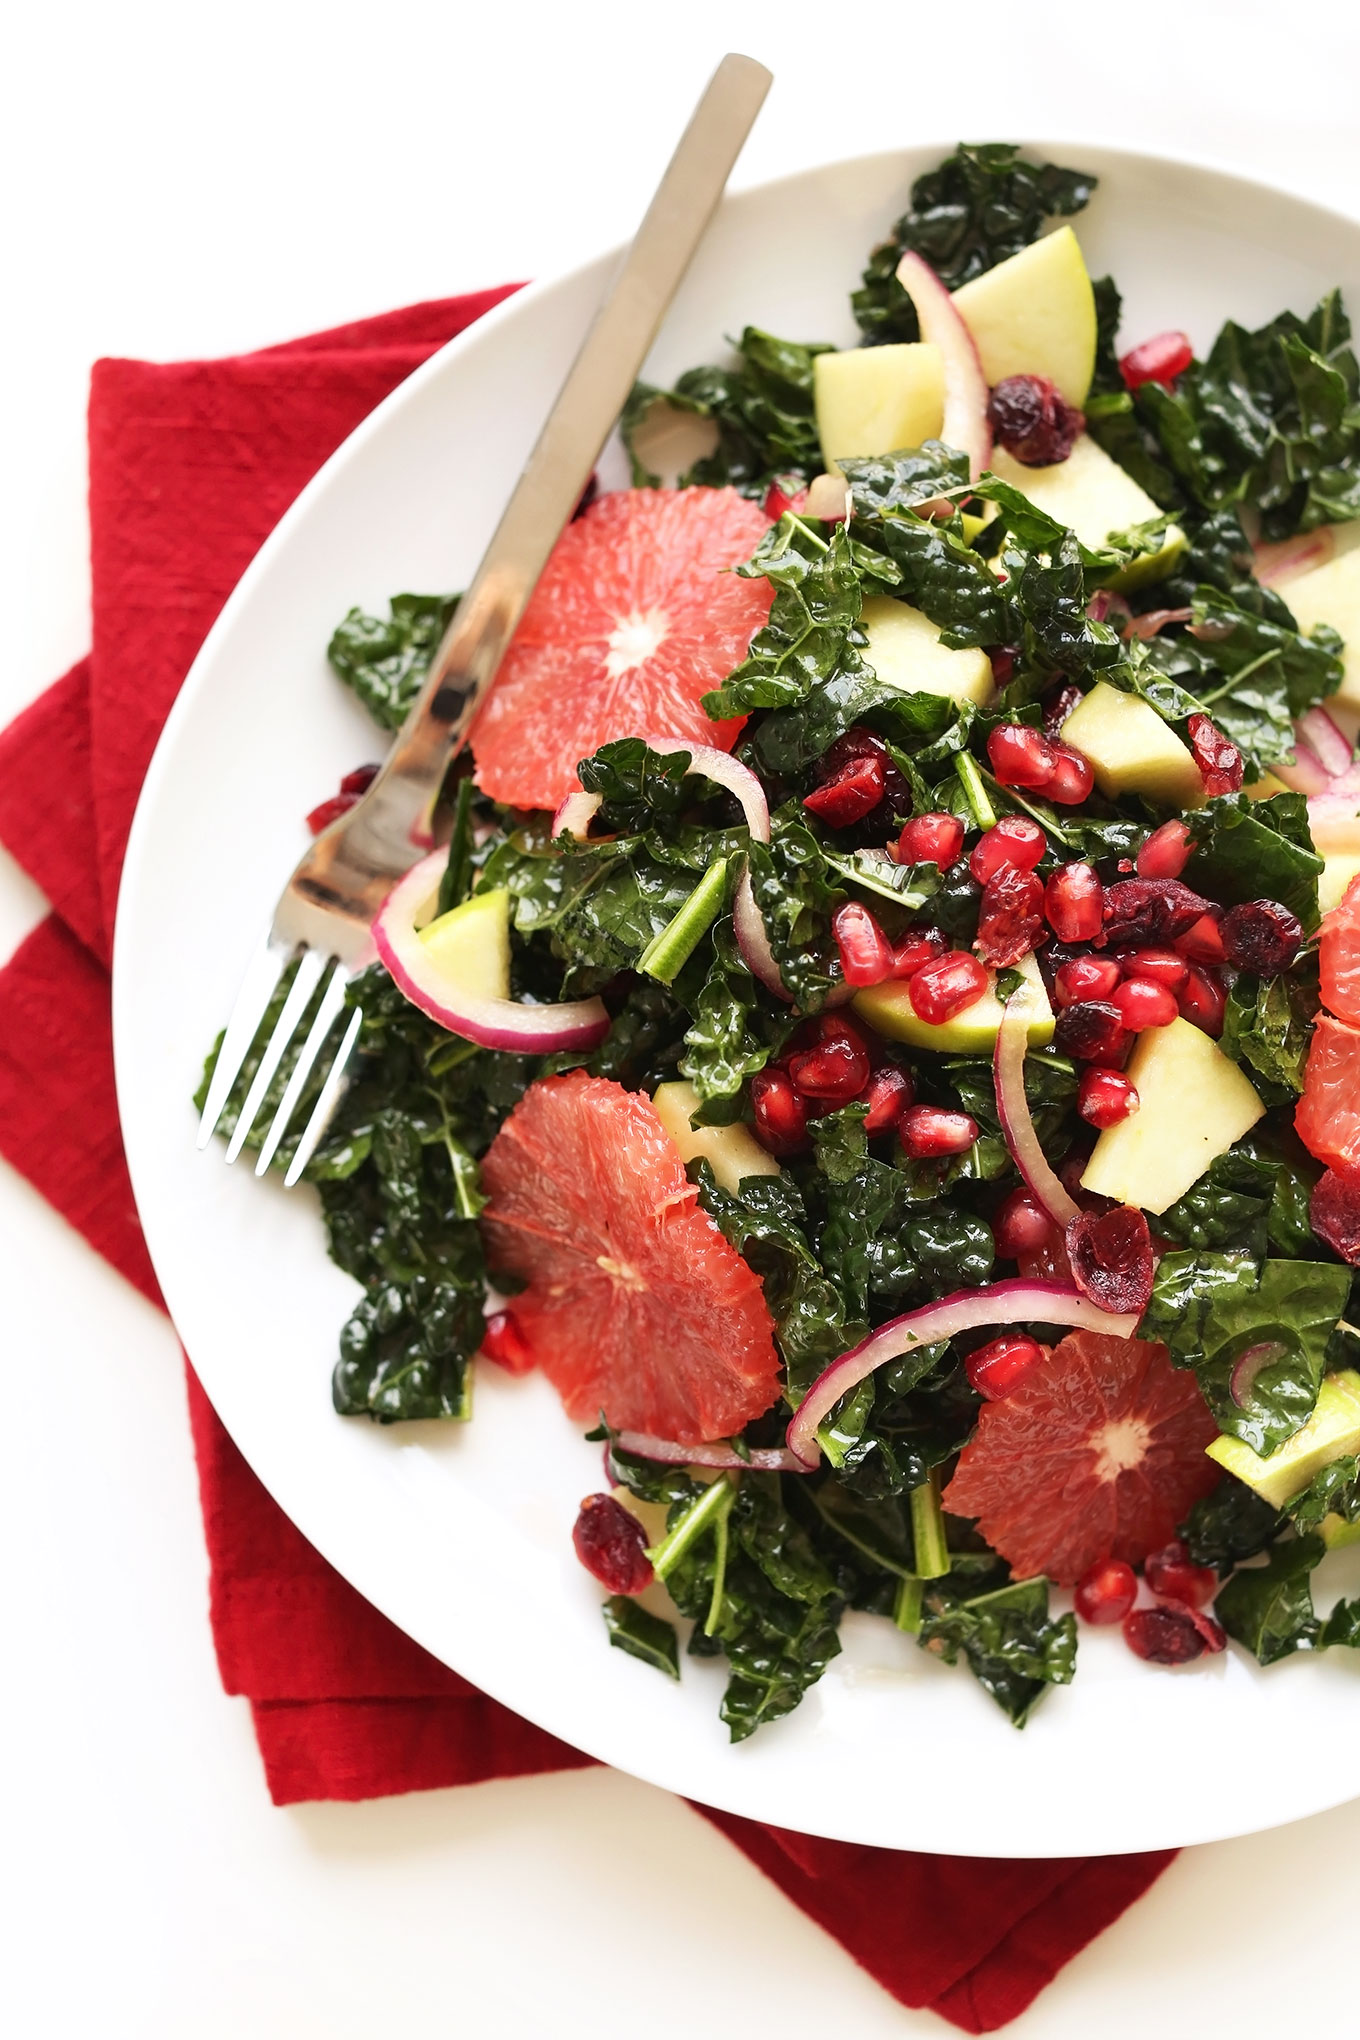 Plate of Citrus Kale Salad made with a tangy Red Wine Vinaigrette